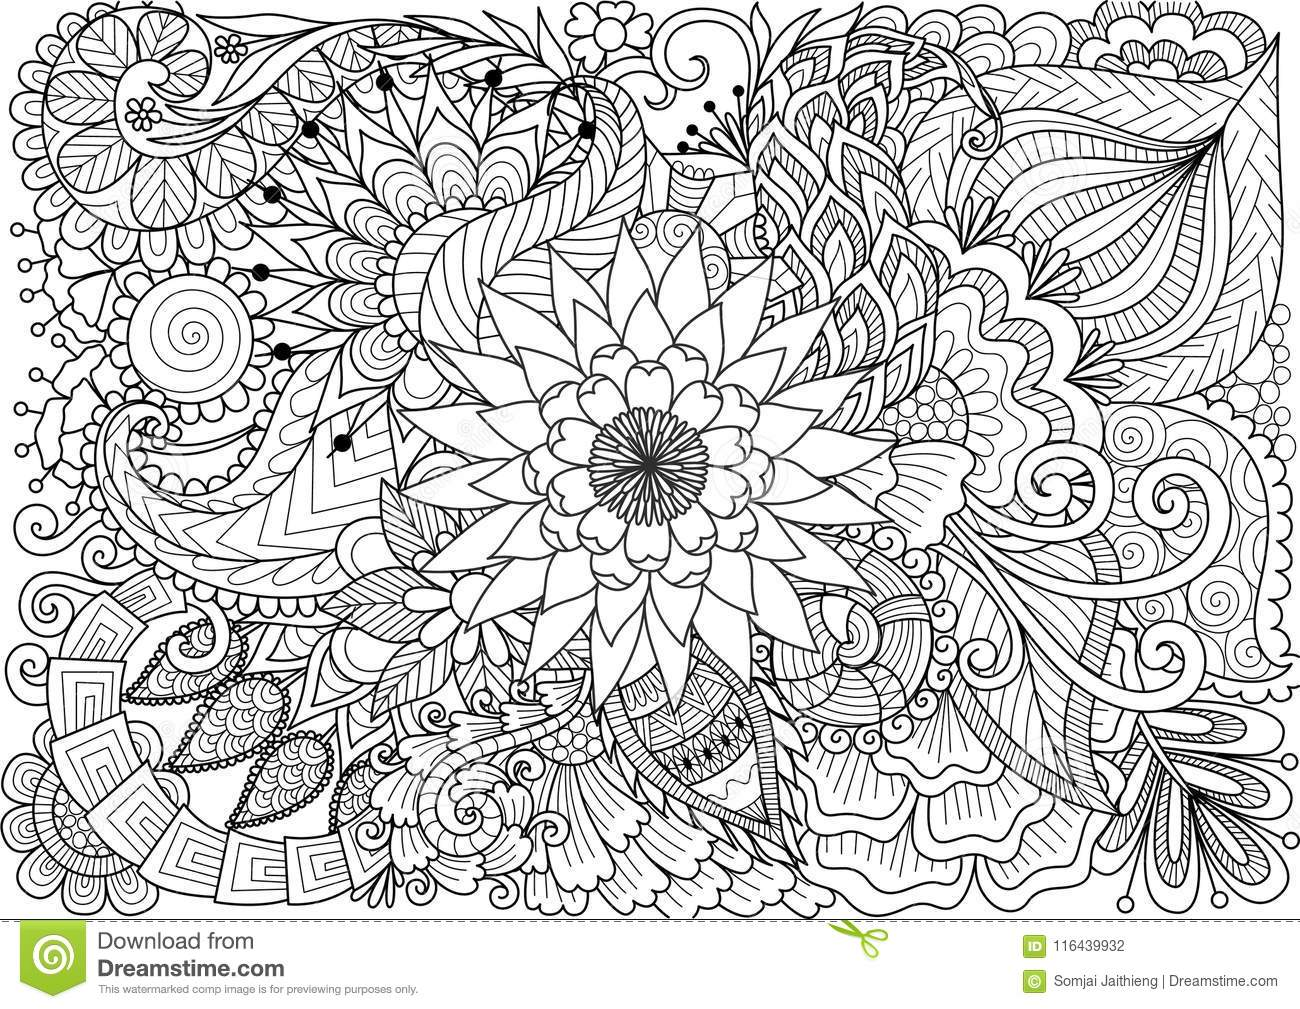 Royalty Free Vector Download Line Art Of Beautiful Flowers For Background And Coloring Book Page Adult